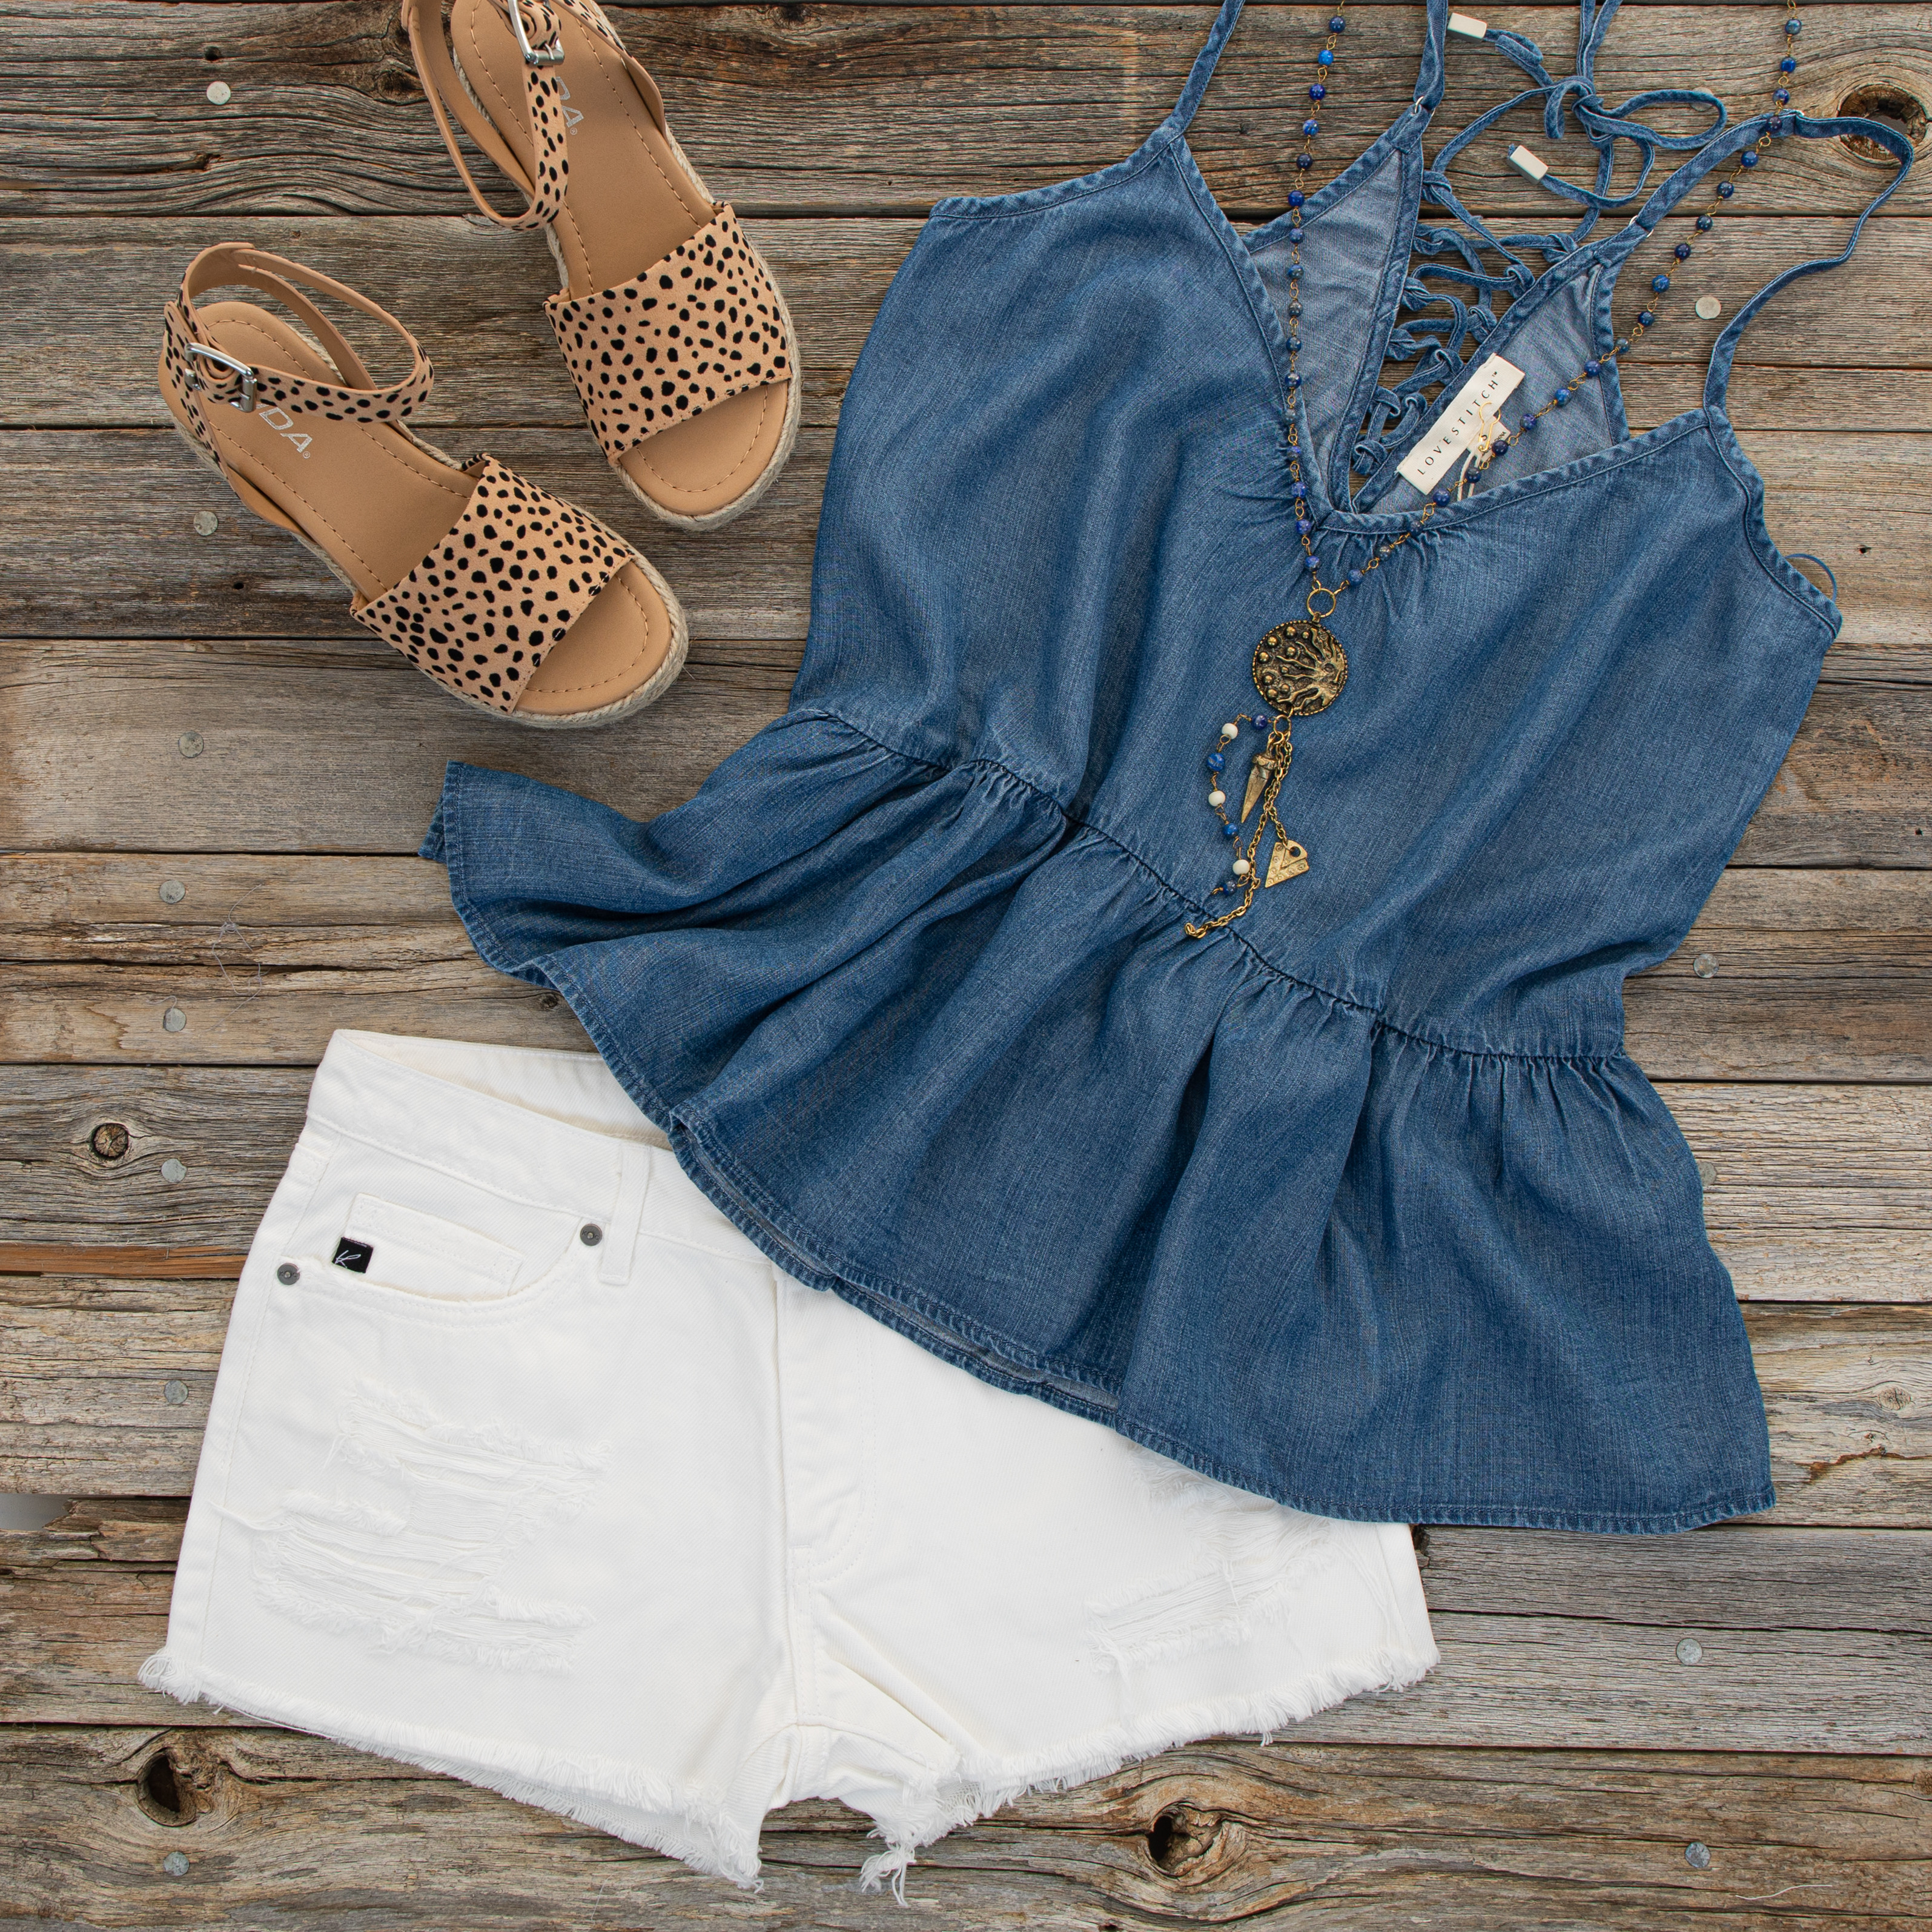 Denim Blue Sleeveless Drop Waist Top with Lace Up Back